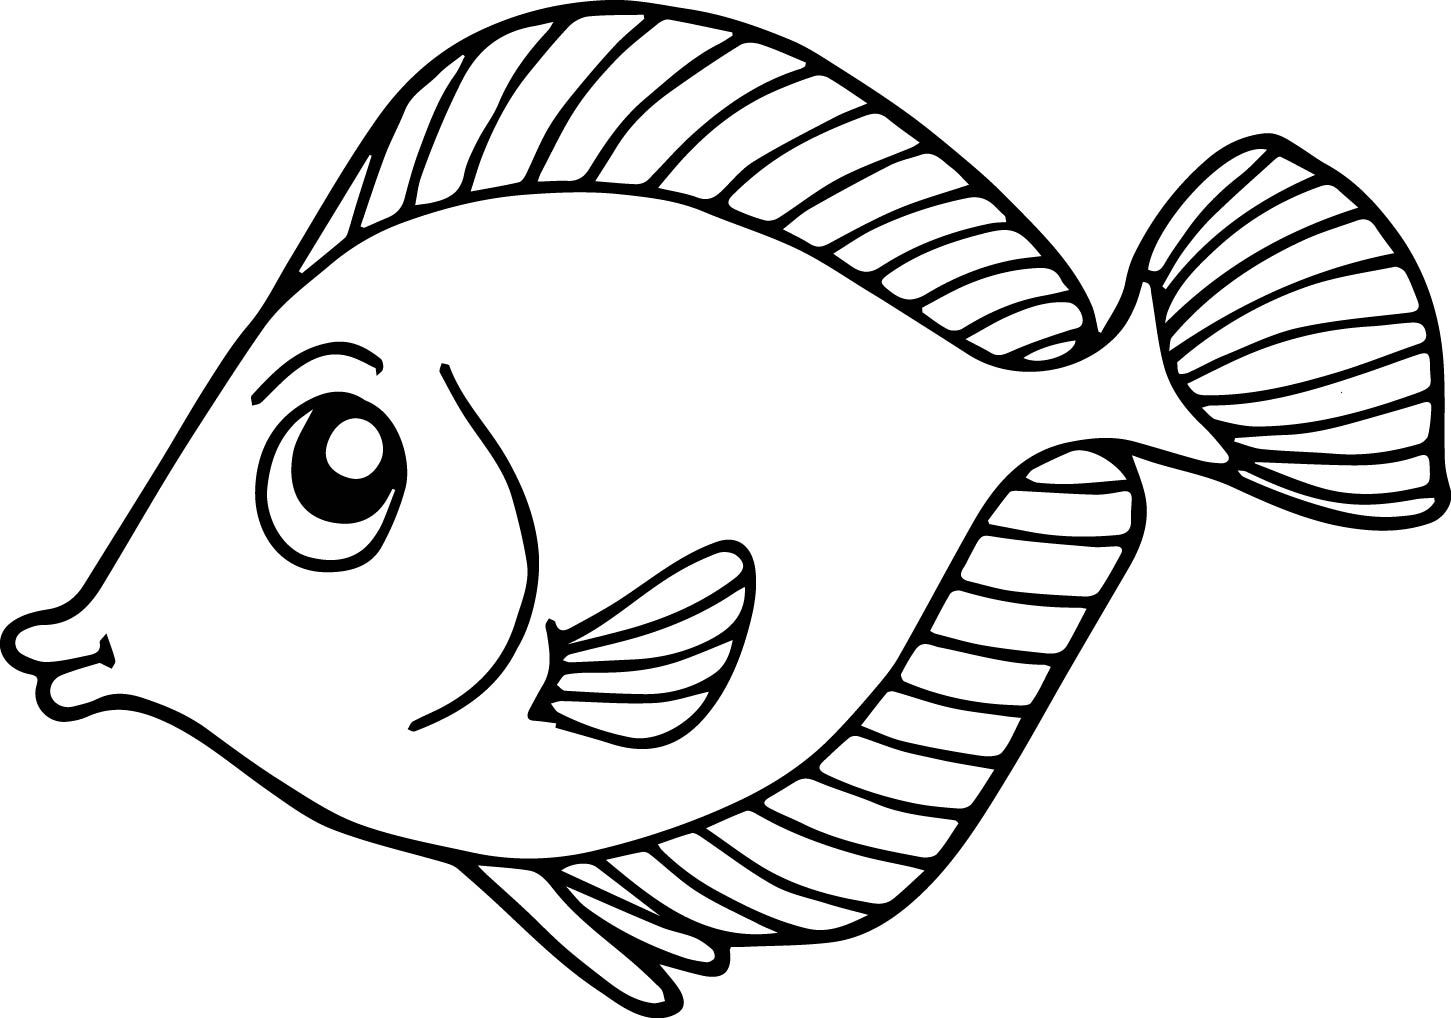 Fish Coloring Pages For Kids Preschool And Kindergarten Animal Coloring Pages Preschool Coloring Pages Fish Coloring Page